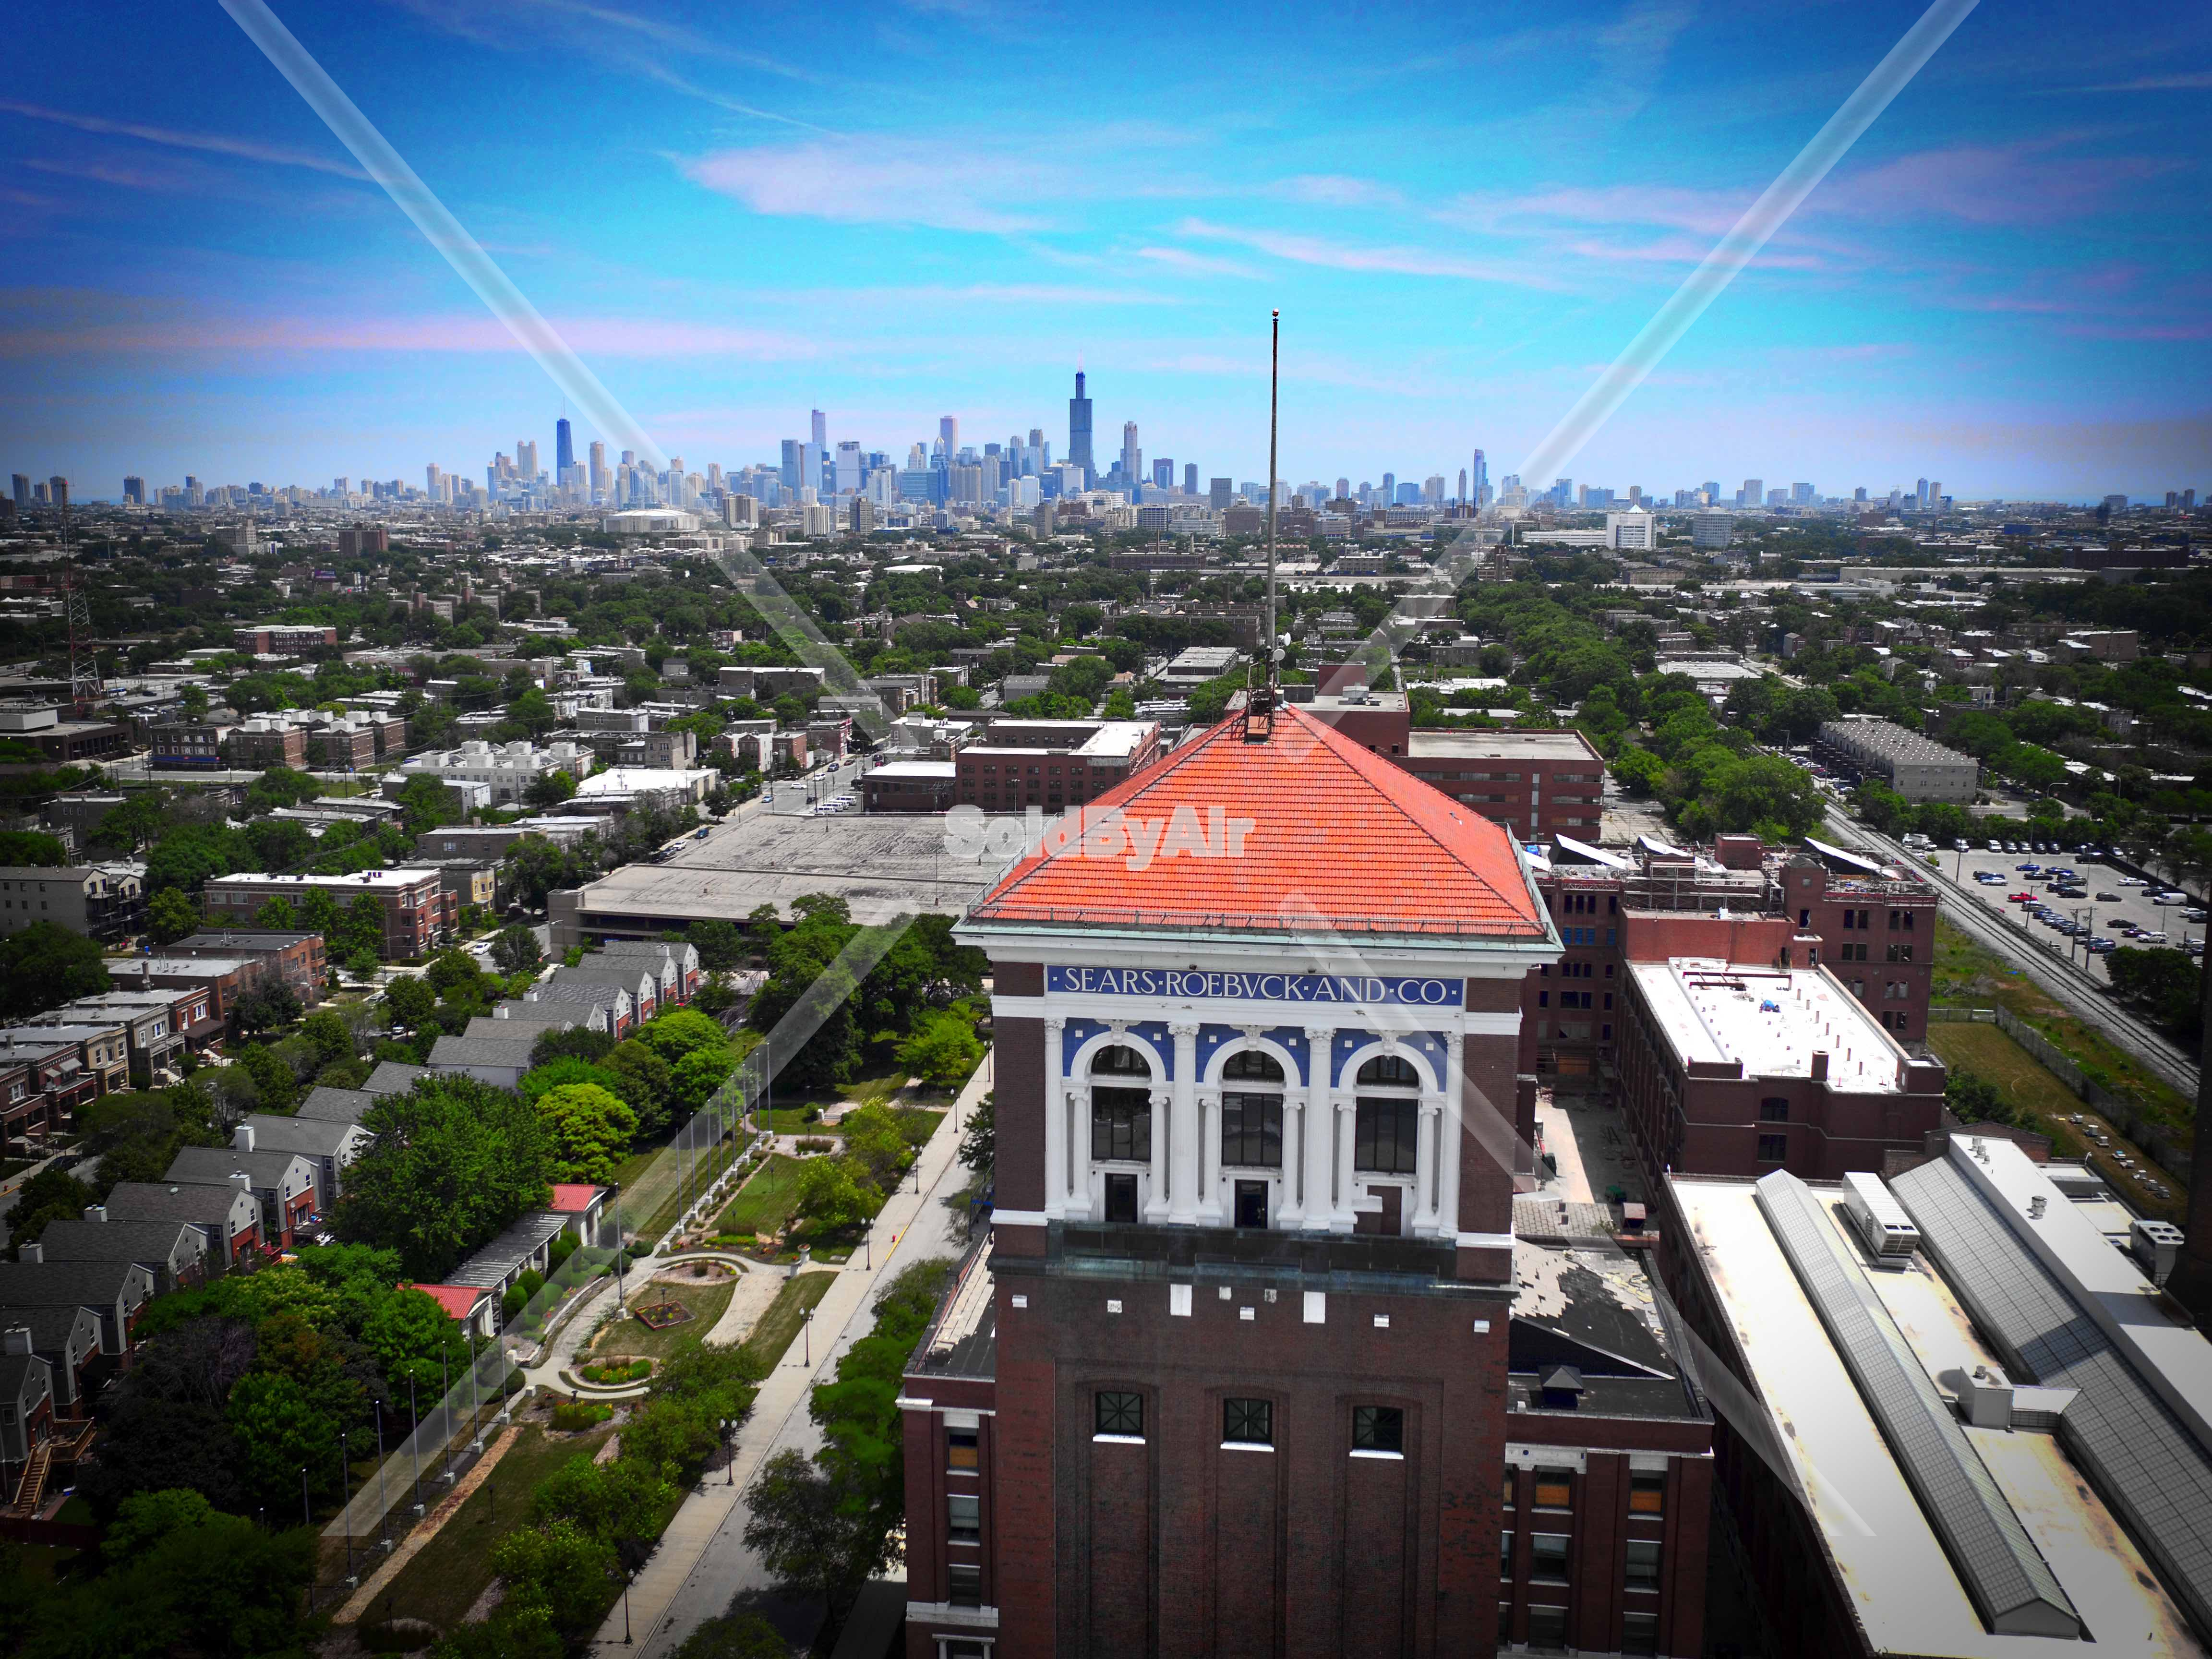 Drone Photo of The original Sears Tower on southwest side in Chicago Illinois